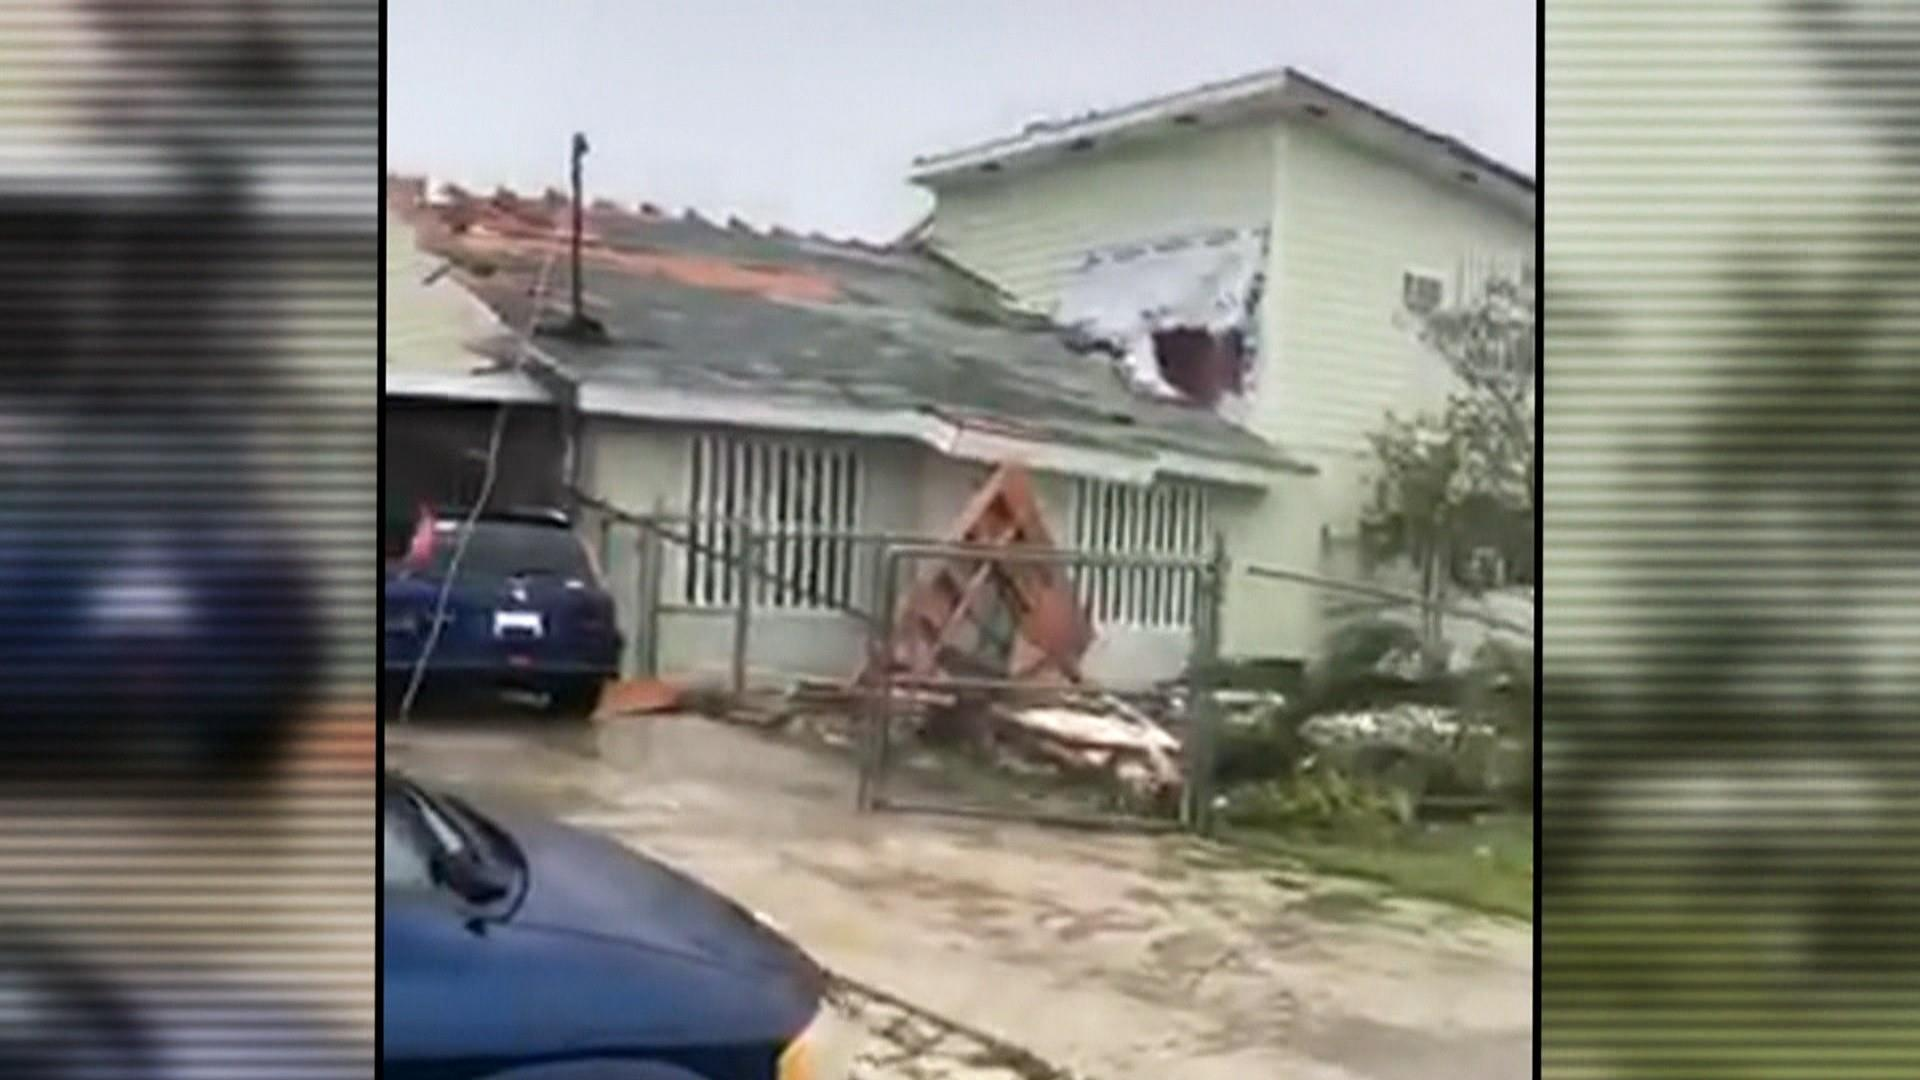 Hurricane Dorian kills at least 5 in Bahamas, remains 'extremely dangerous'